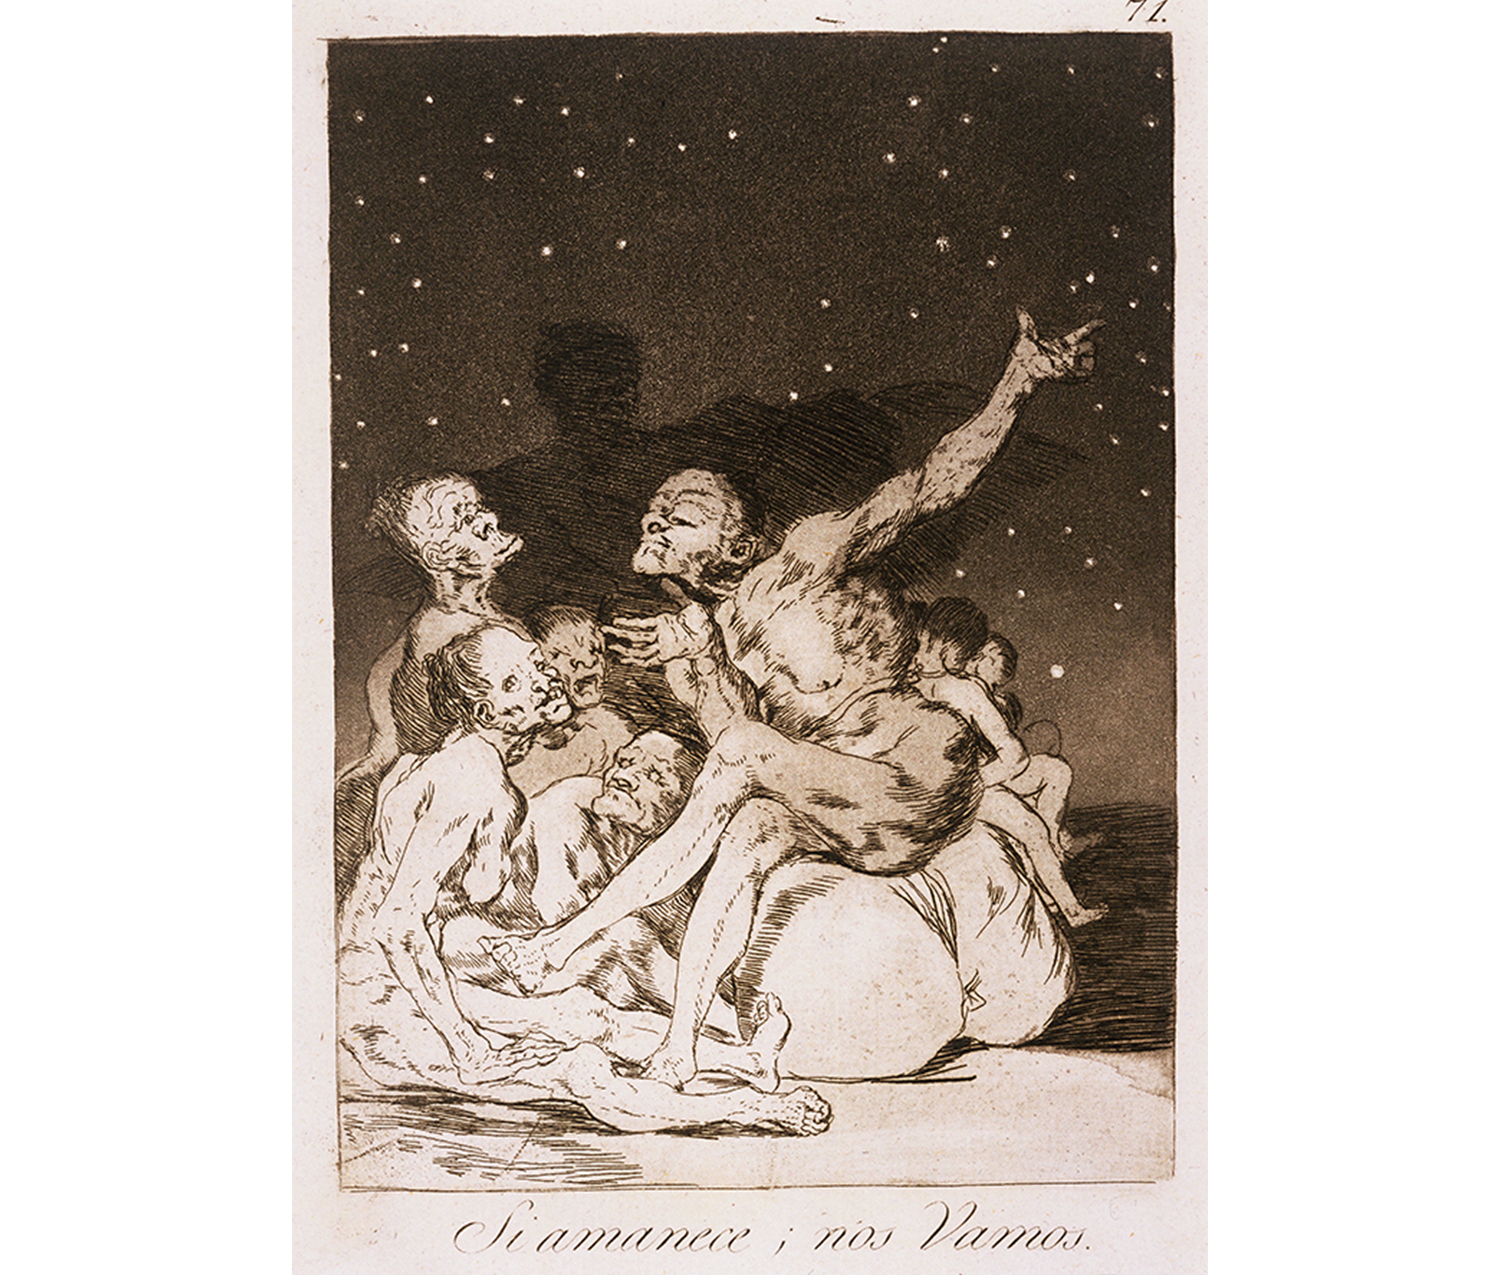 group of naked figures sit under the stars